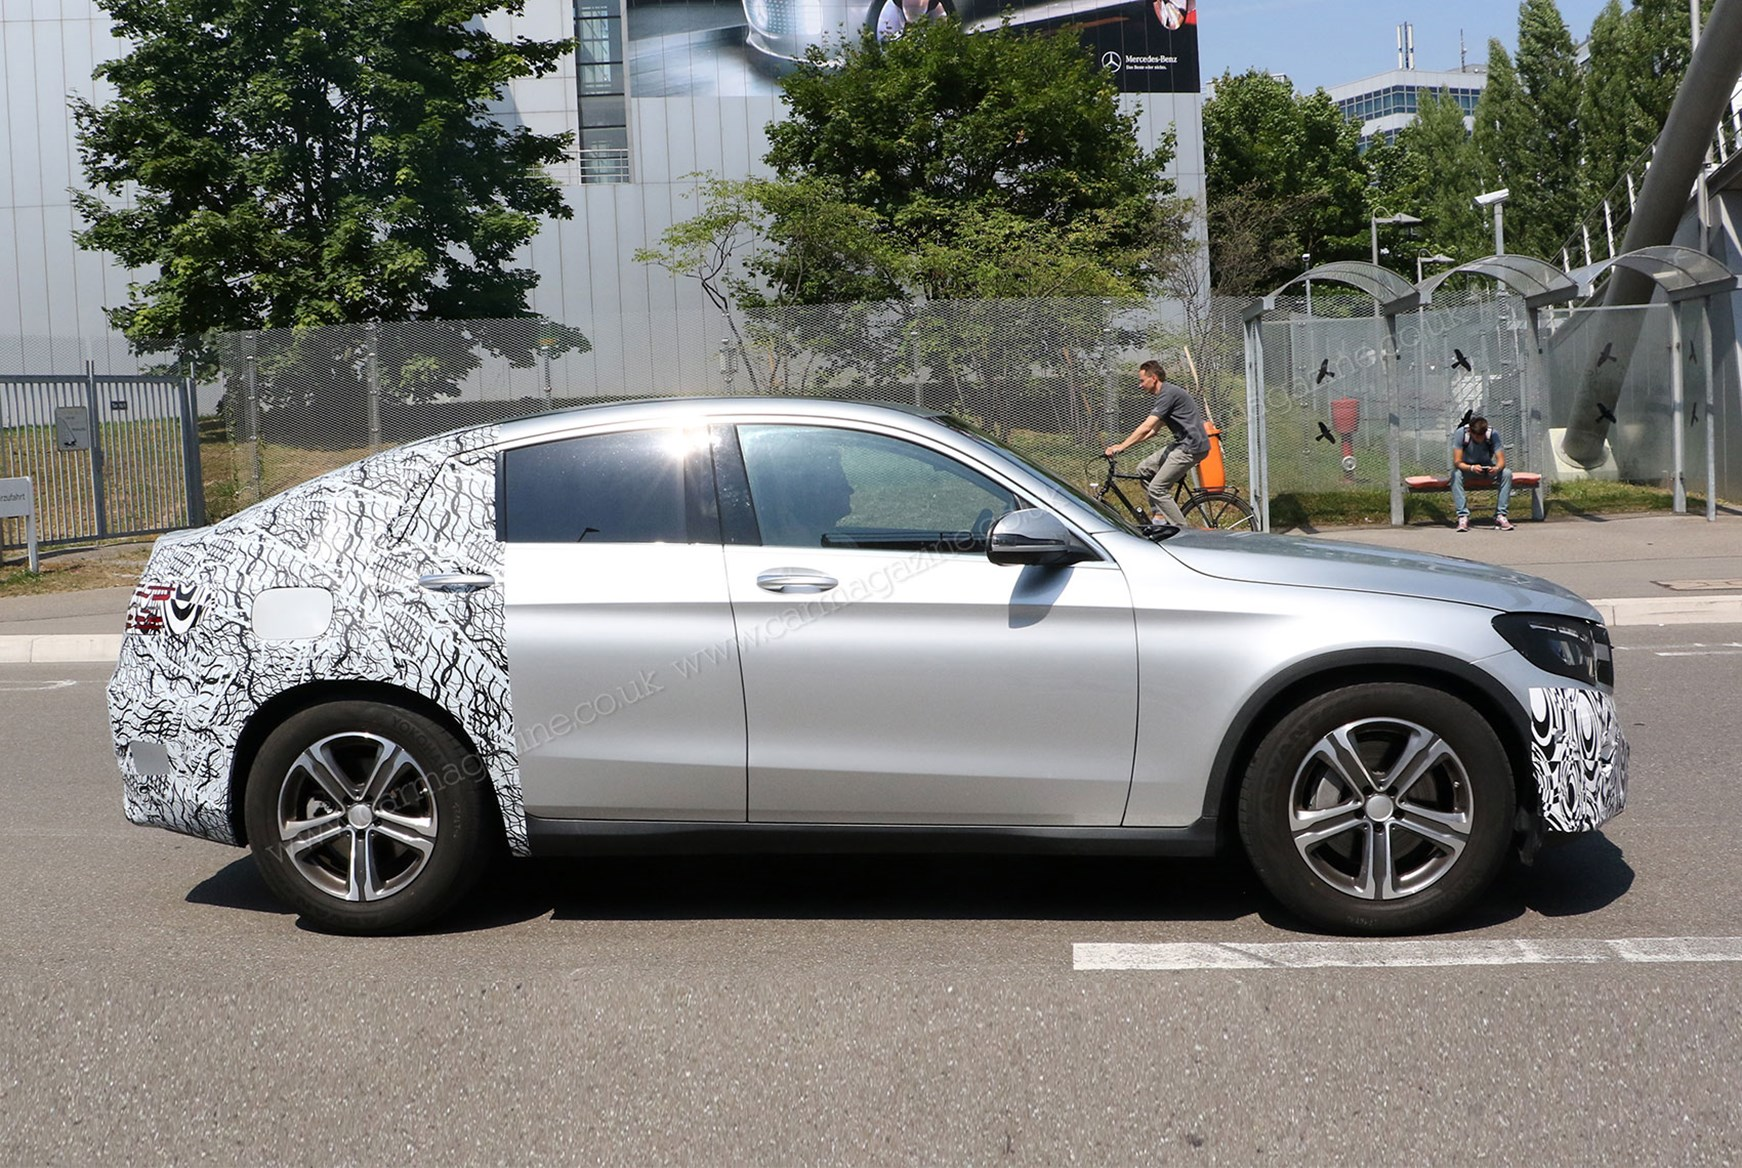 Mercedes Glc Coupe 2016 Spied Once More Merc S Going X4 Chasing